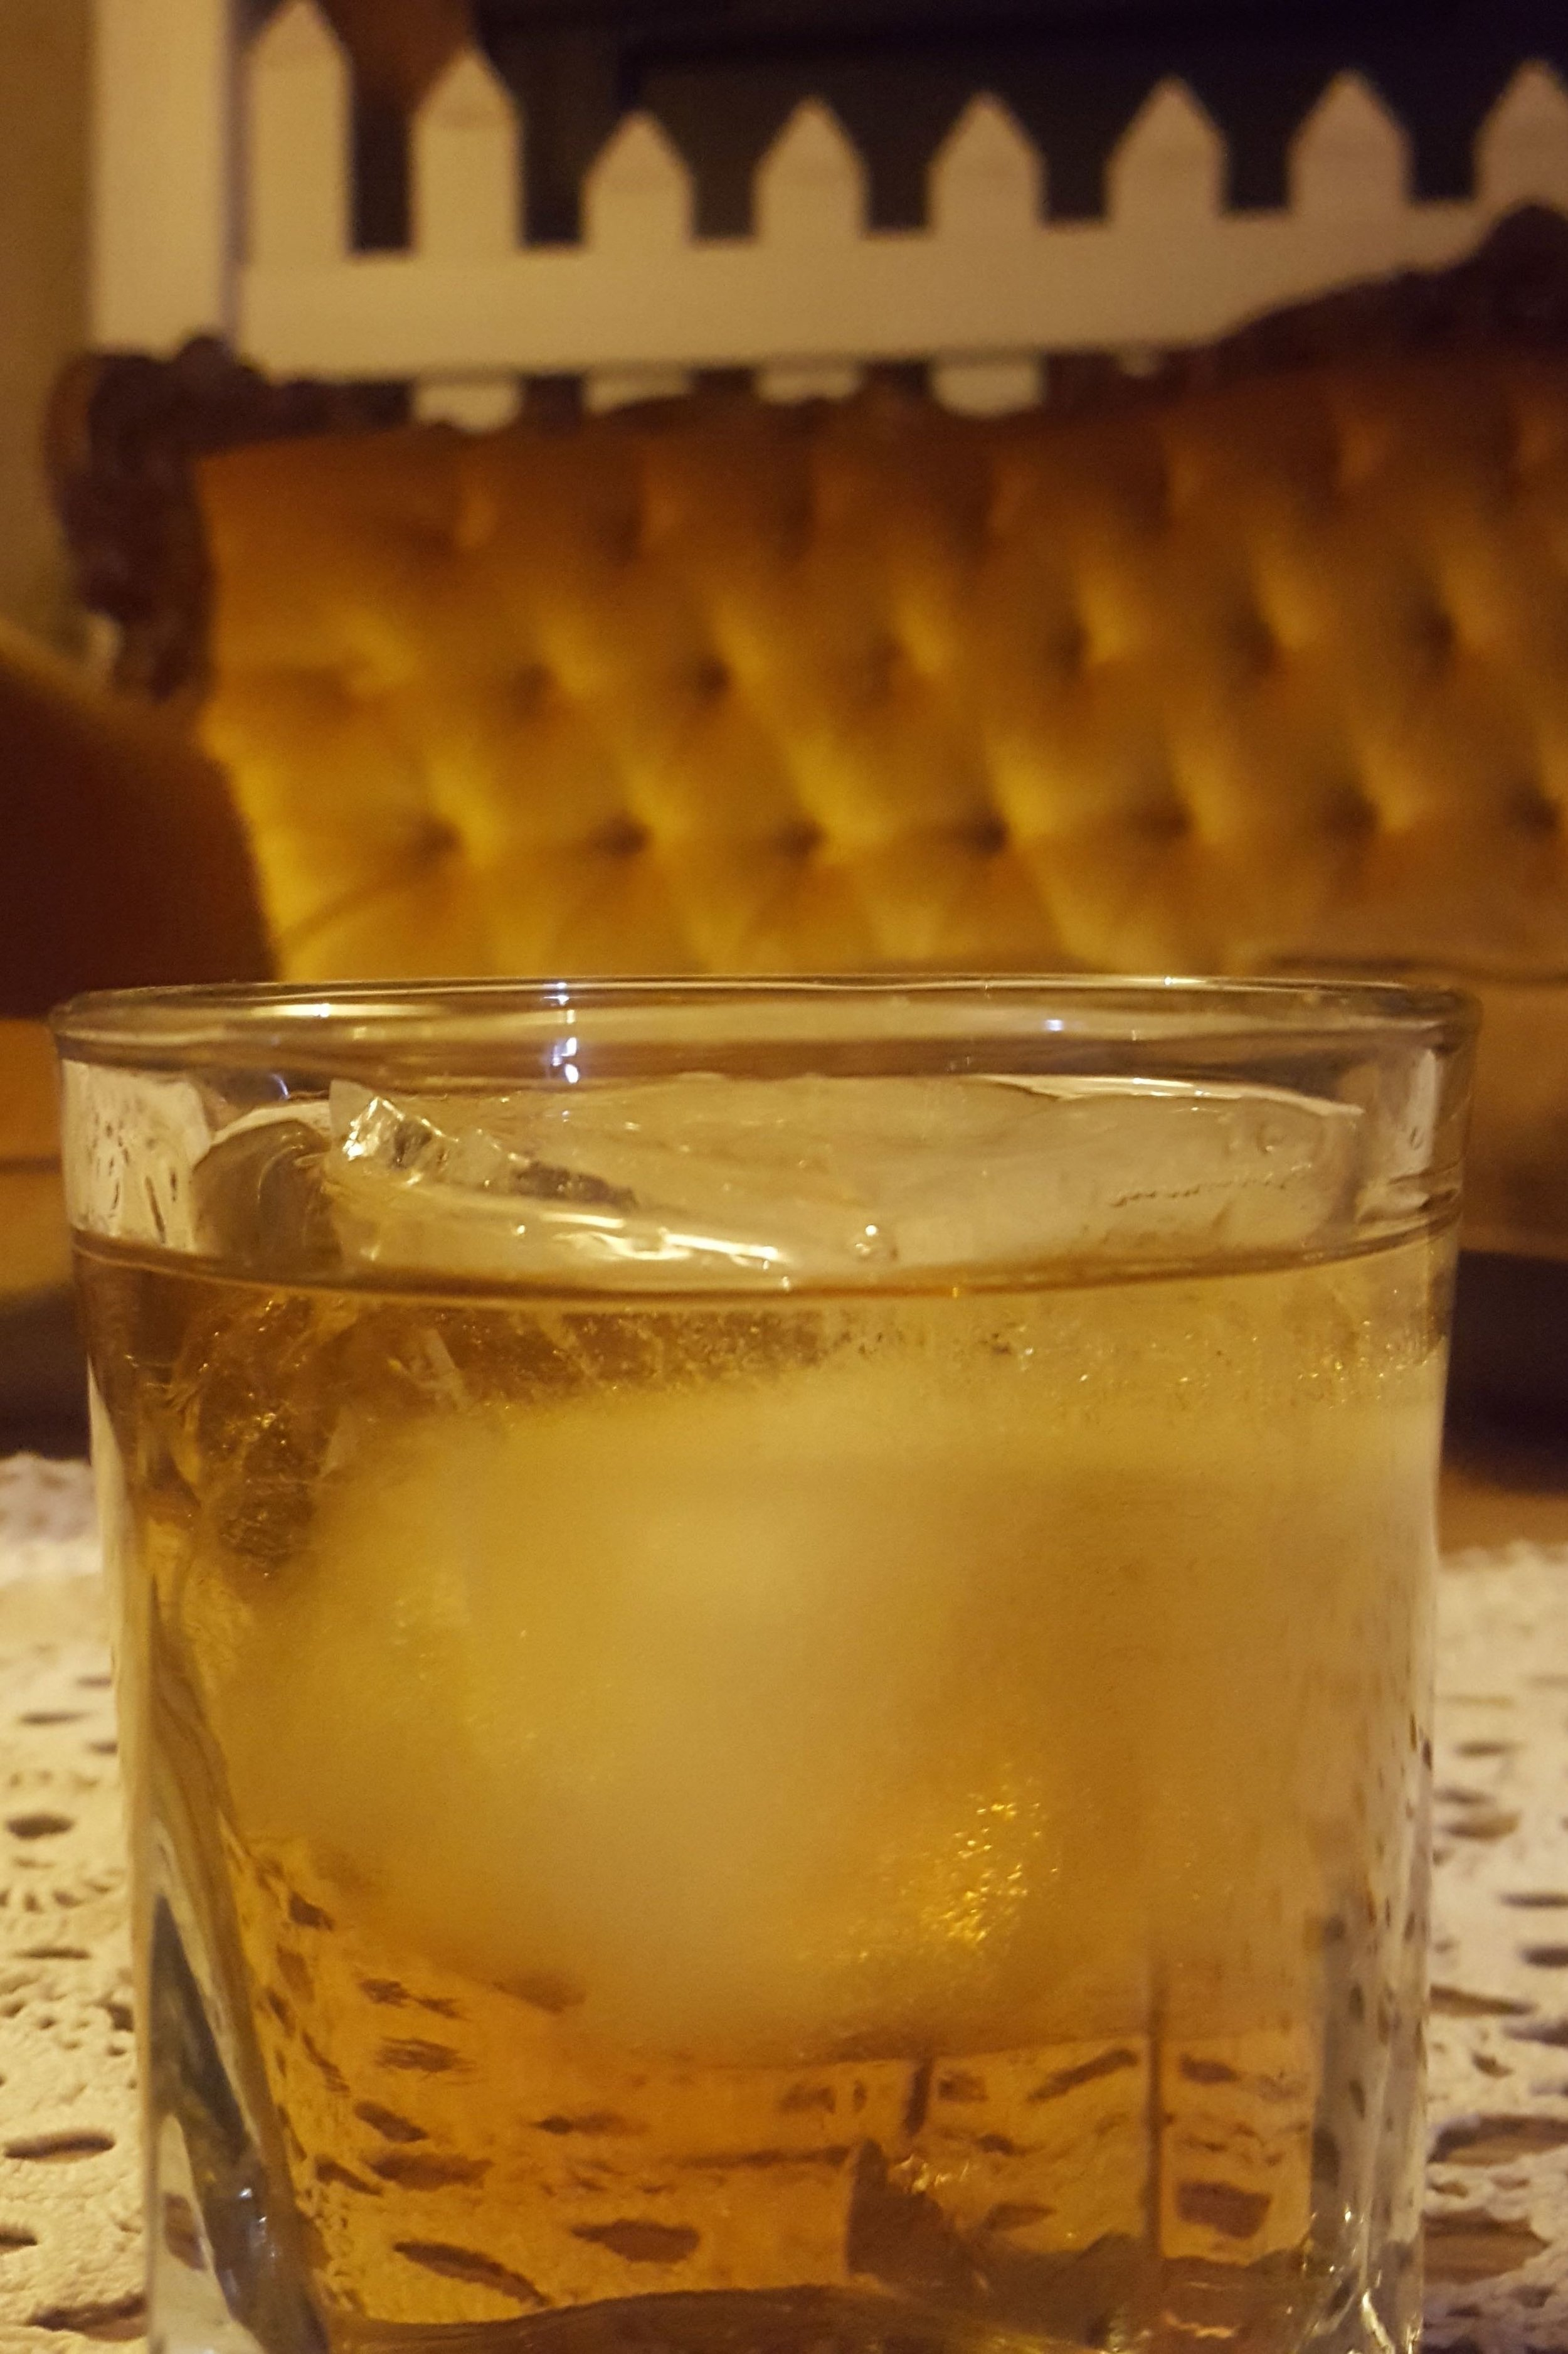 The Whiskey Dreams